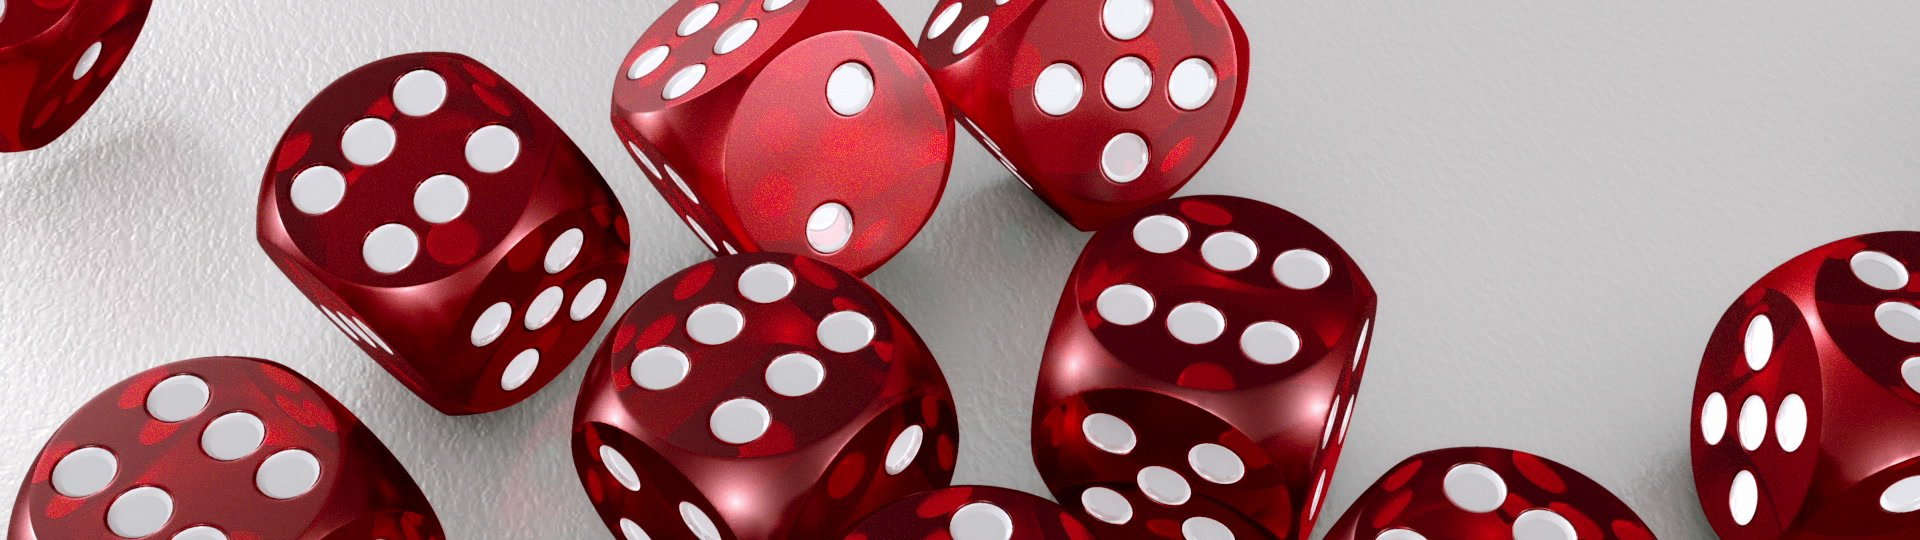 Many Red Dices | 3D Red rolling dices on white. Result: 6 on each die. - ID:13823